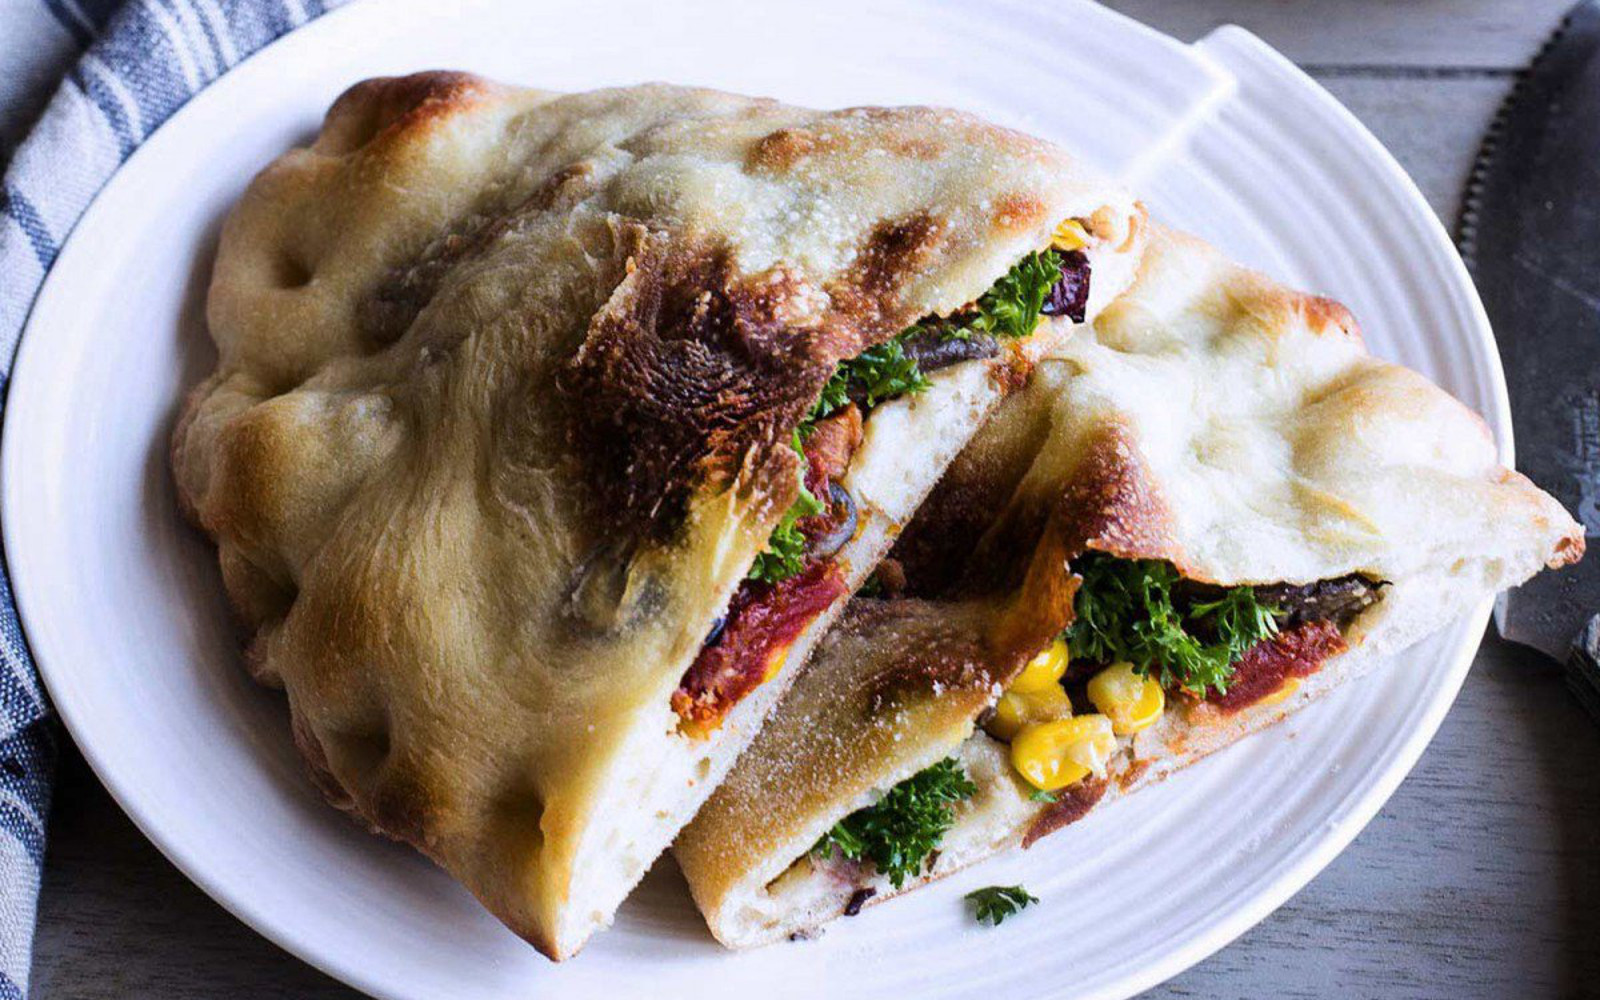 Hummus and Veggie Stuffed Calzone